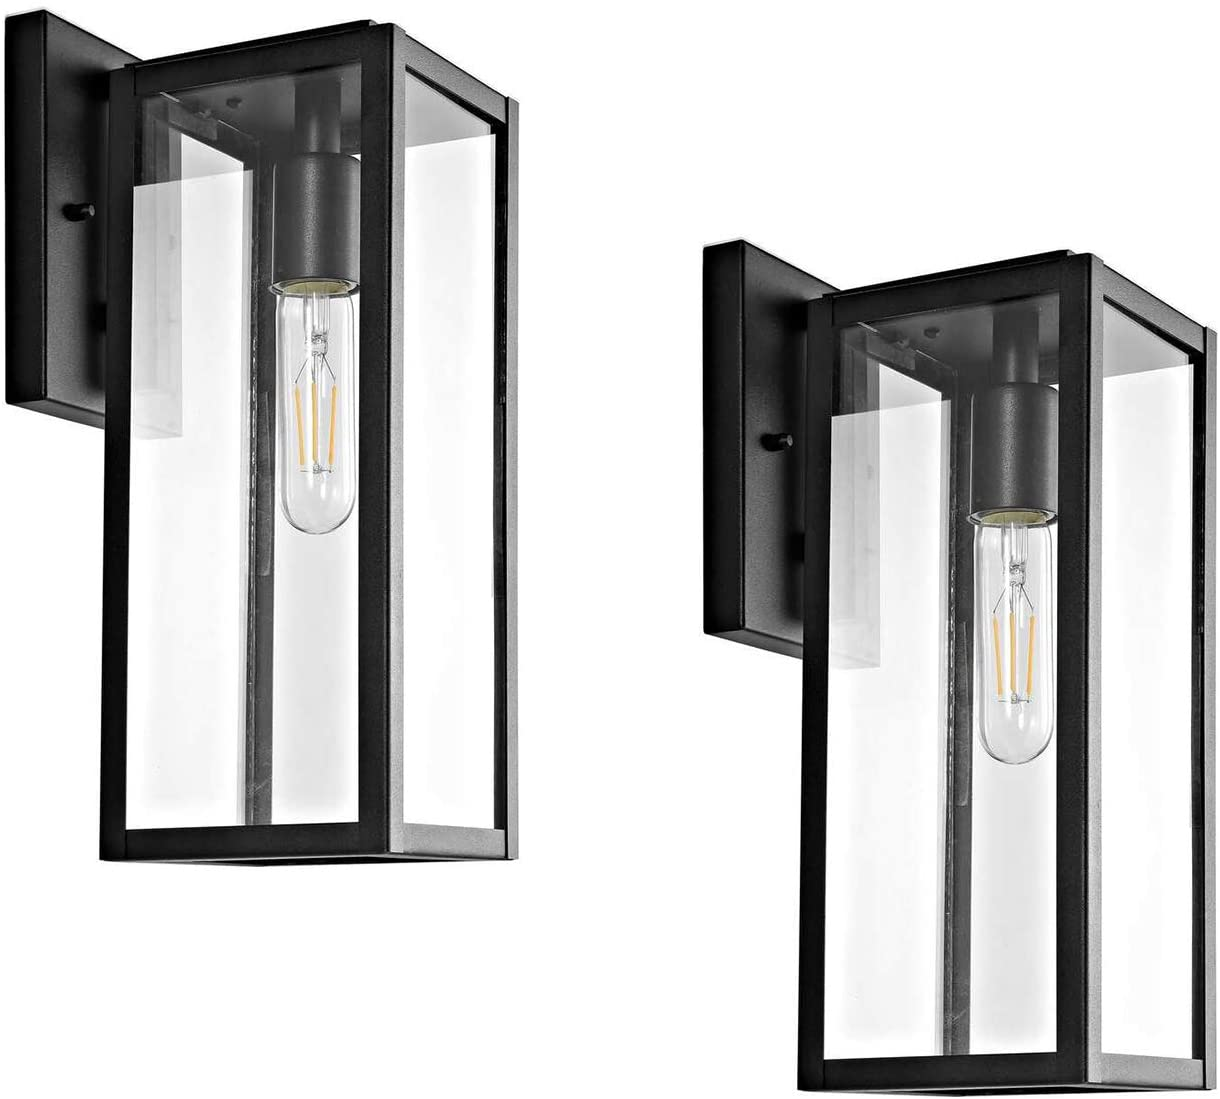 Bestshared Outdoor Wall Lantern, 151-Light Exterior Wall Sconce Light Fixtures,Wall Mounted Single Light, Black Wall Lamp with Clear Glass (2 Pack)